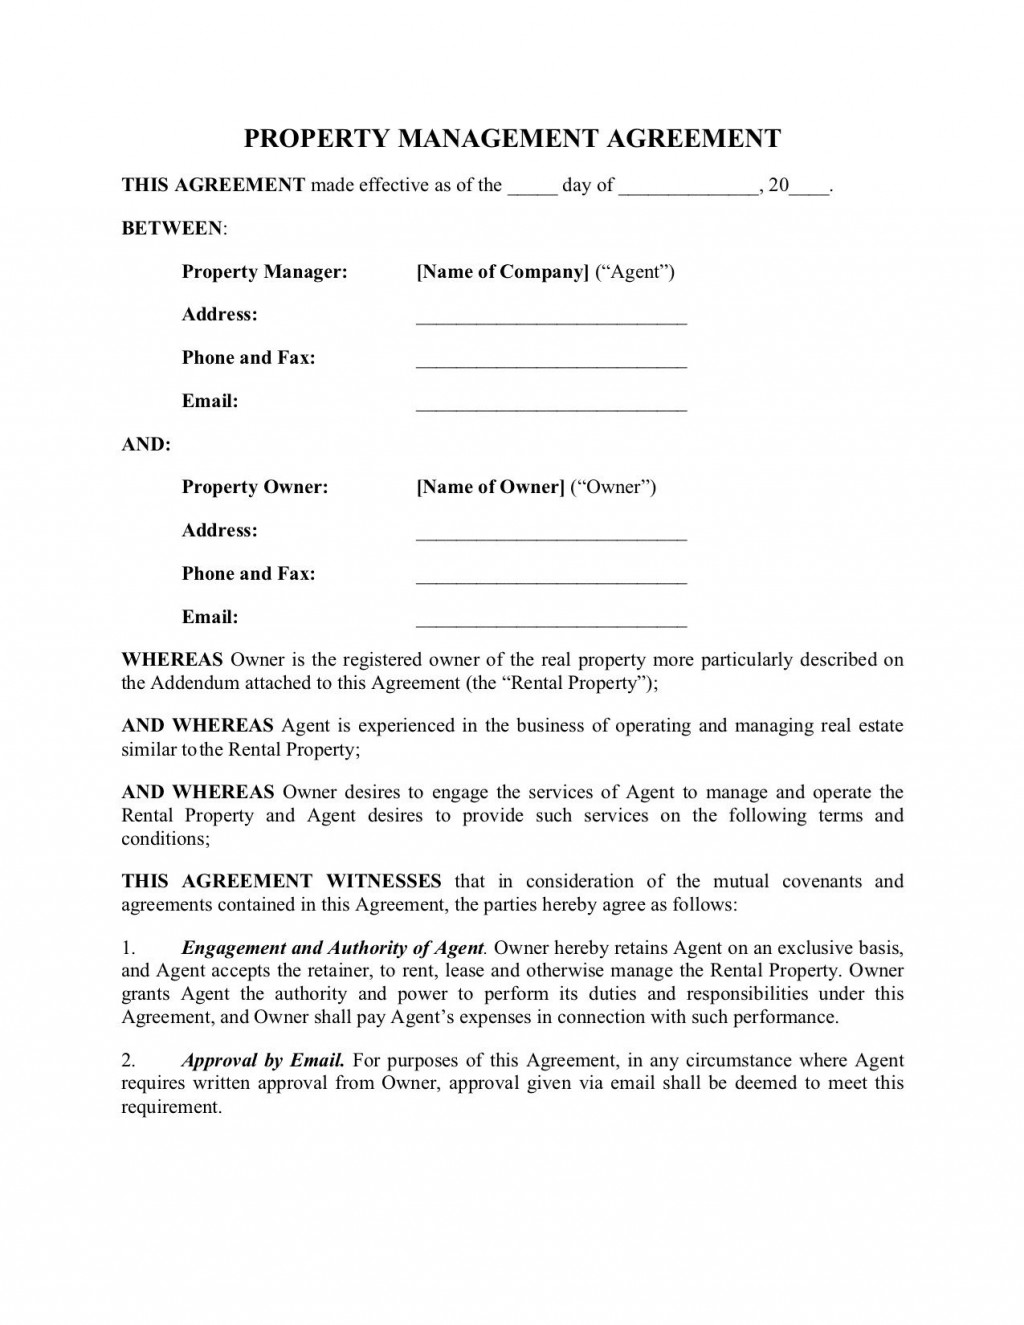 003 Astounding Property Management Agreement Template Design  Templates Sample Termination Of Commercial FormLarge